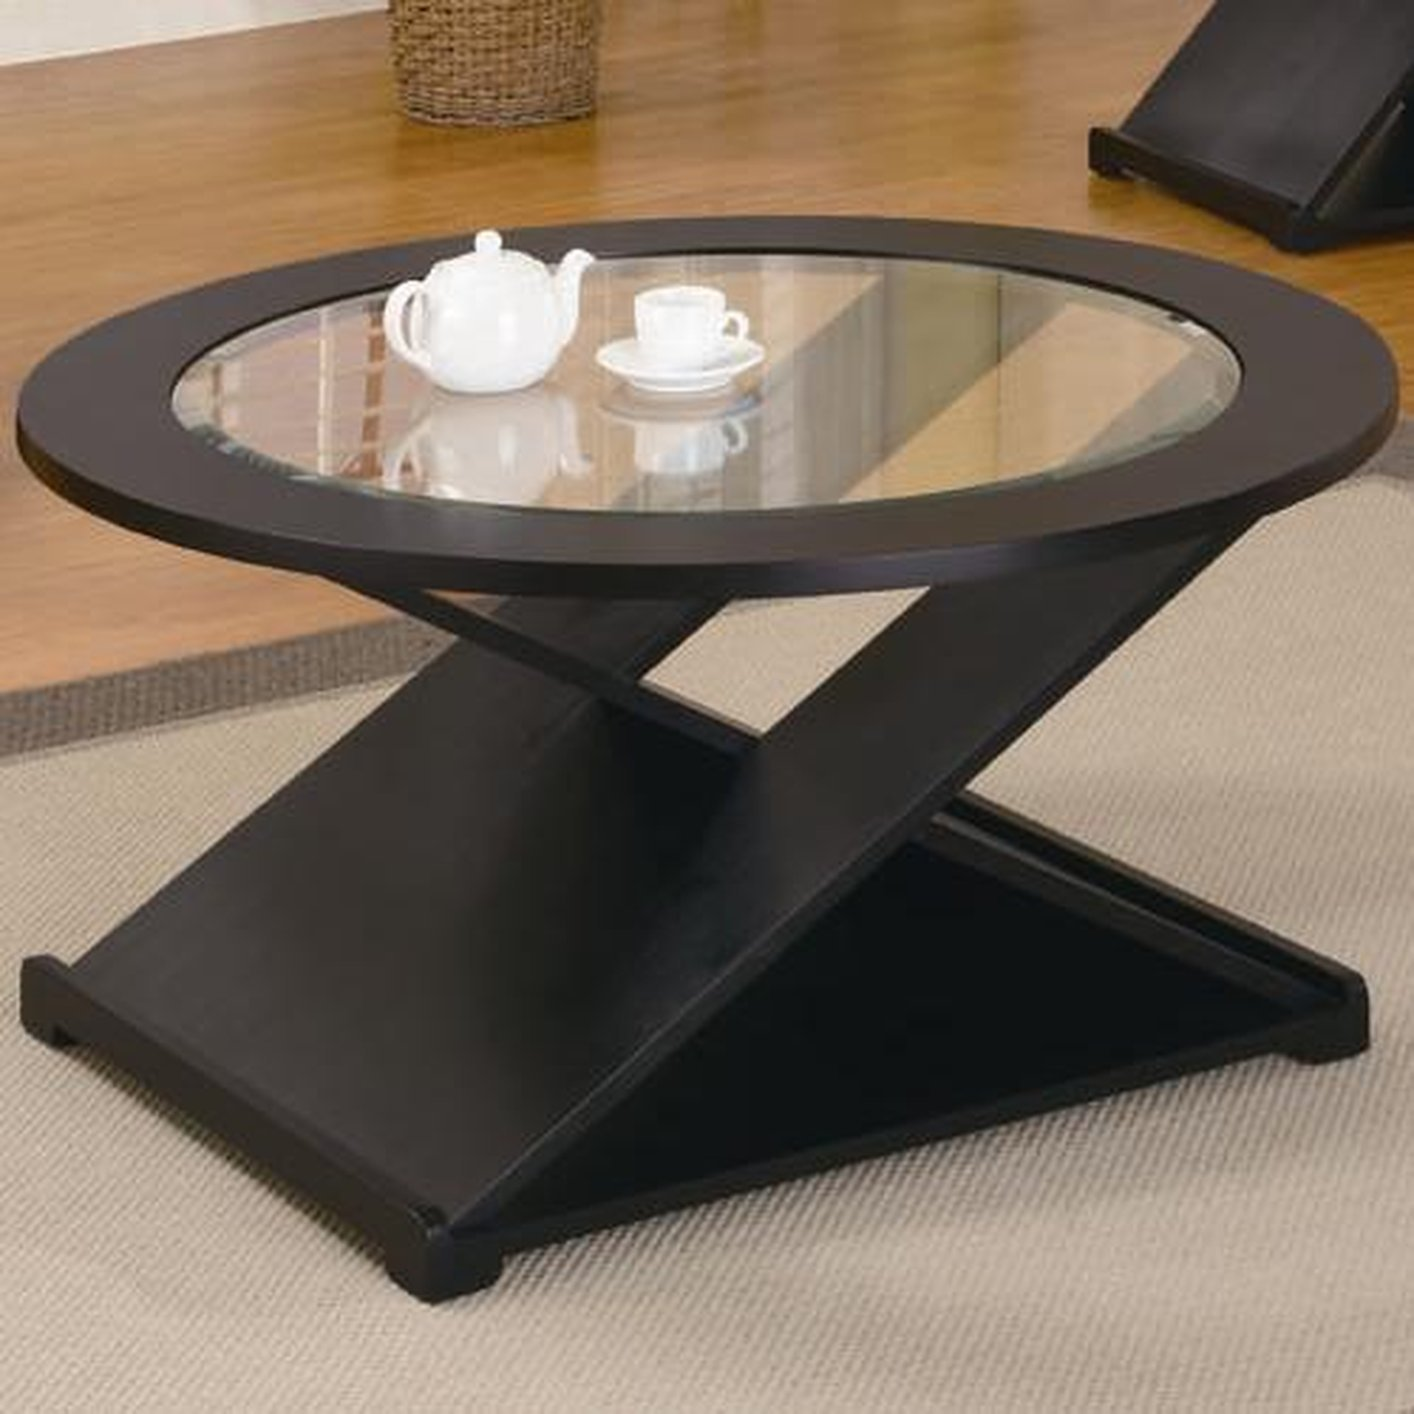 Coaster 701501 Black Glass Coffee Table Set Steal A Sofa Furniture Outlet Los Angeles Ca